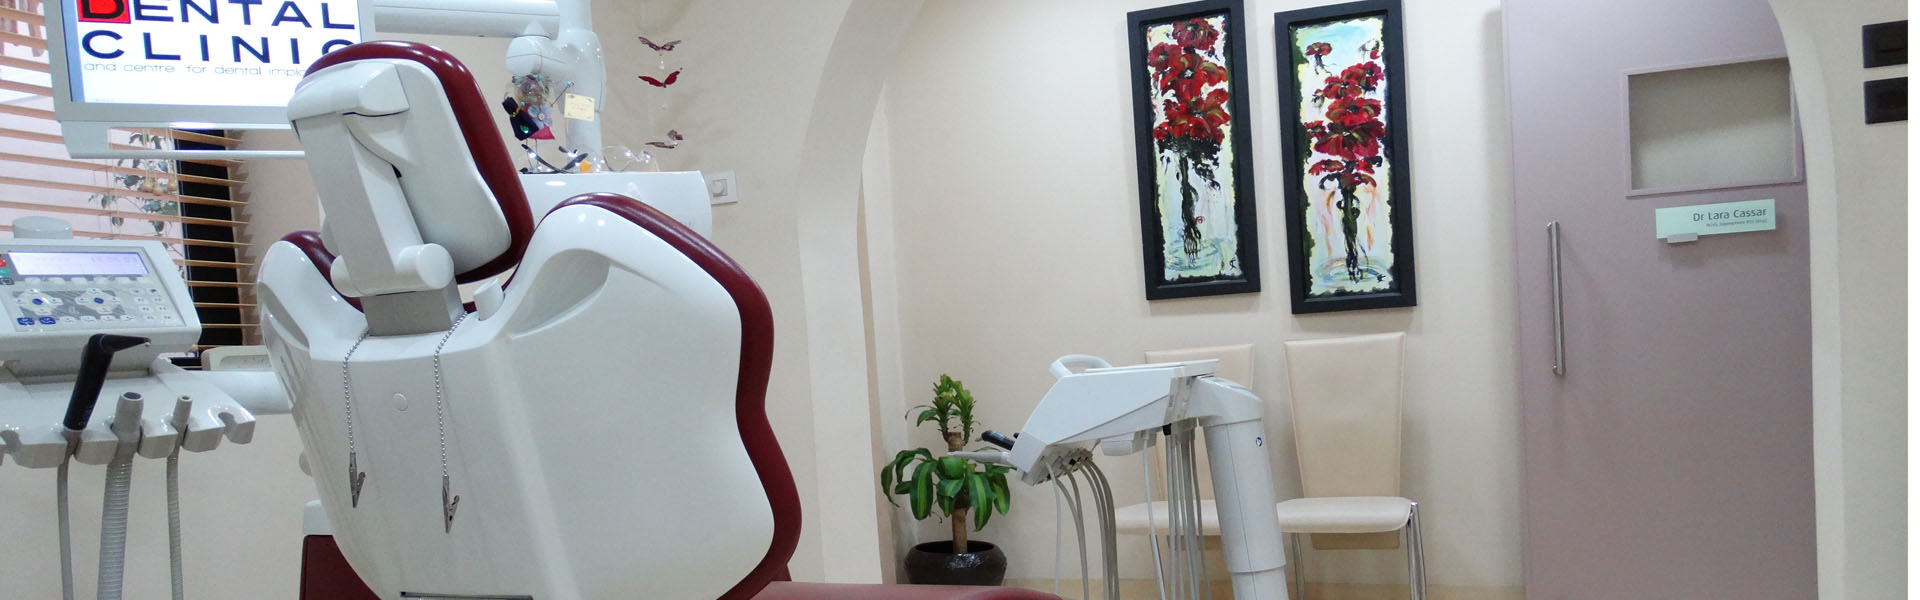 About Us - Prodent Care Dental Clinic, San Gwann, Malta